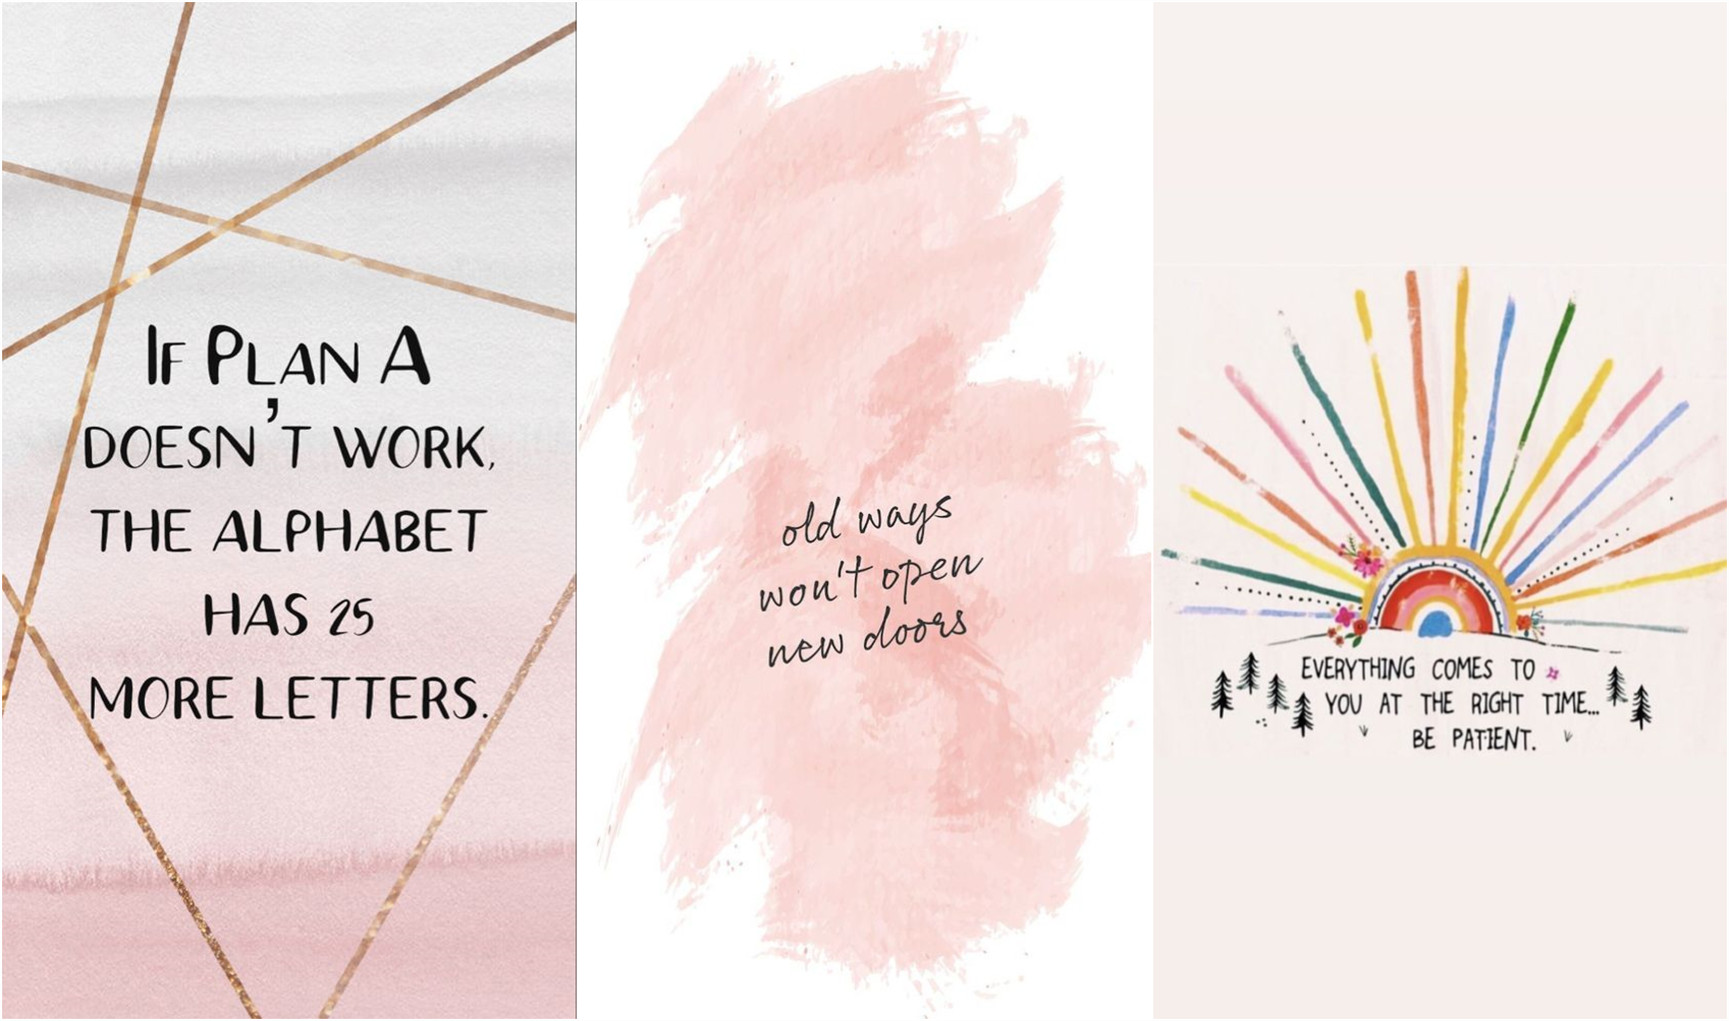 22 Inspirational iPhone Wallpaper Quotes to Embrace - Fancy ...